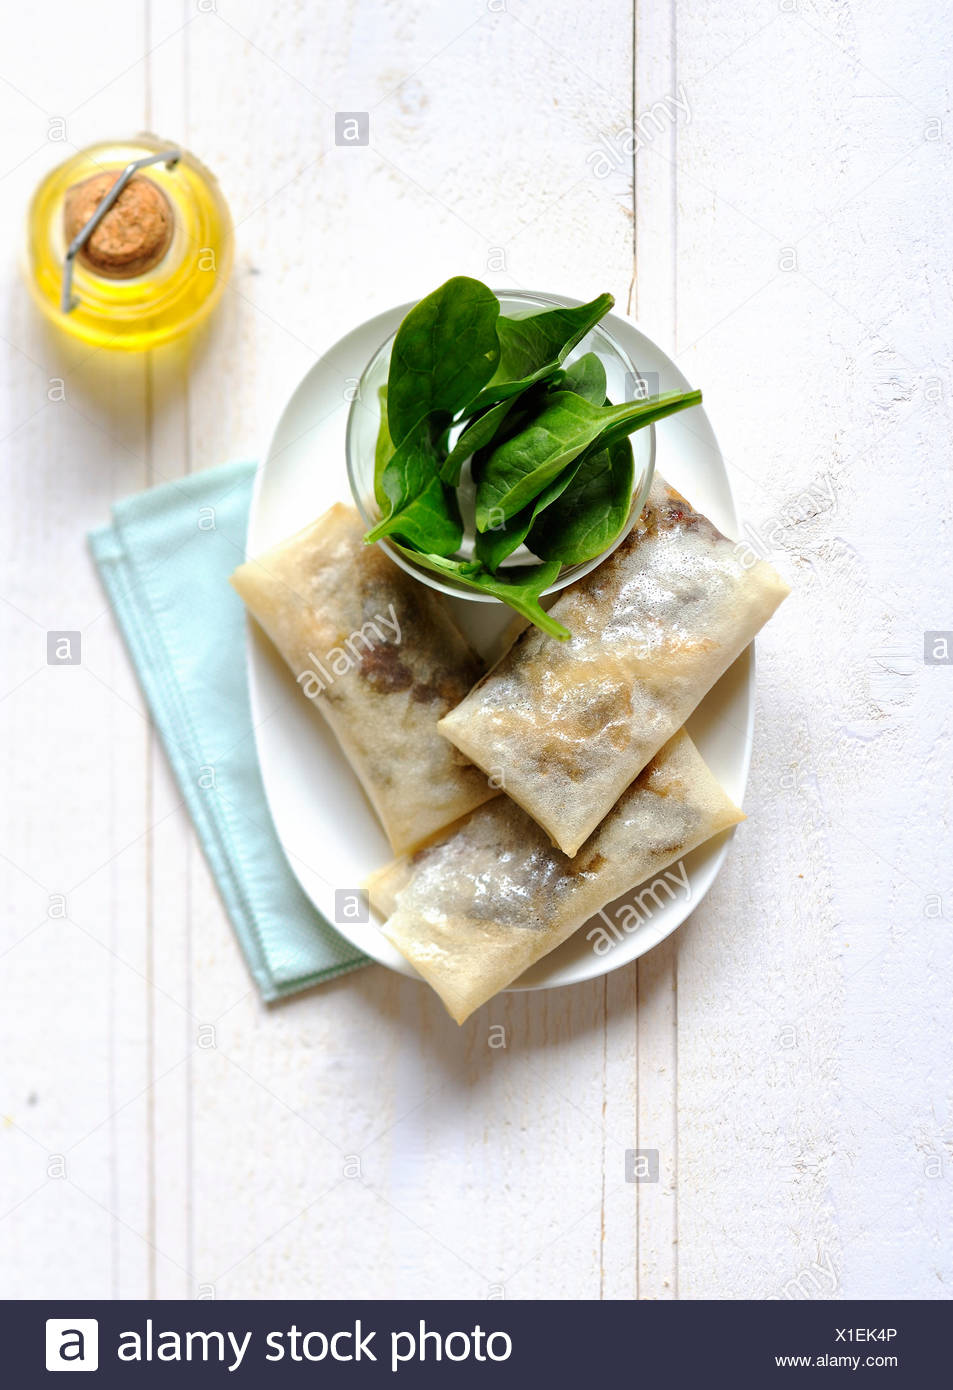 Blood sausage and apple filo pastry rolls - Stock Image